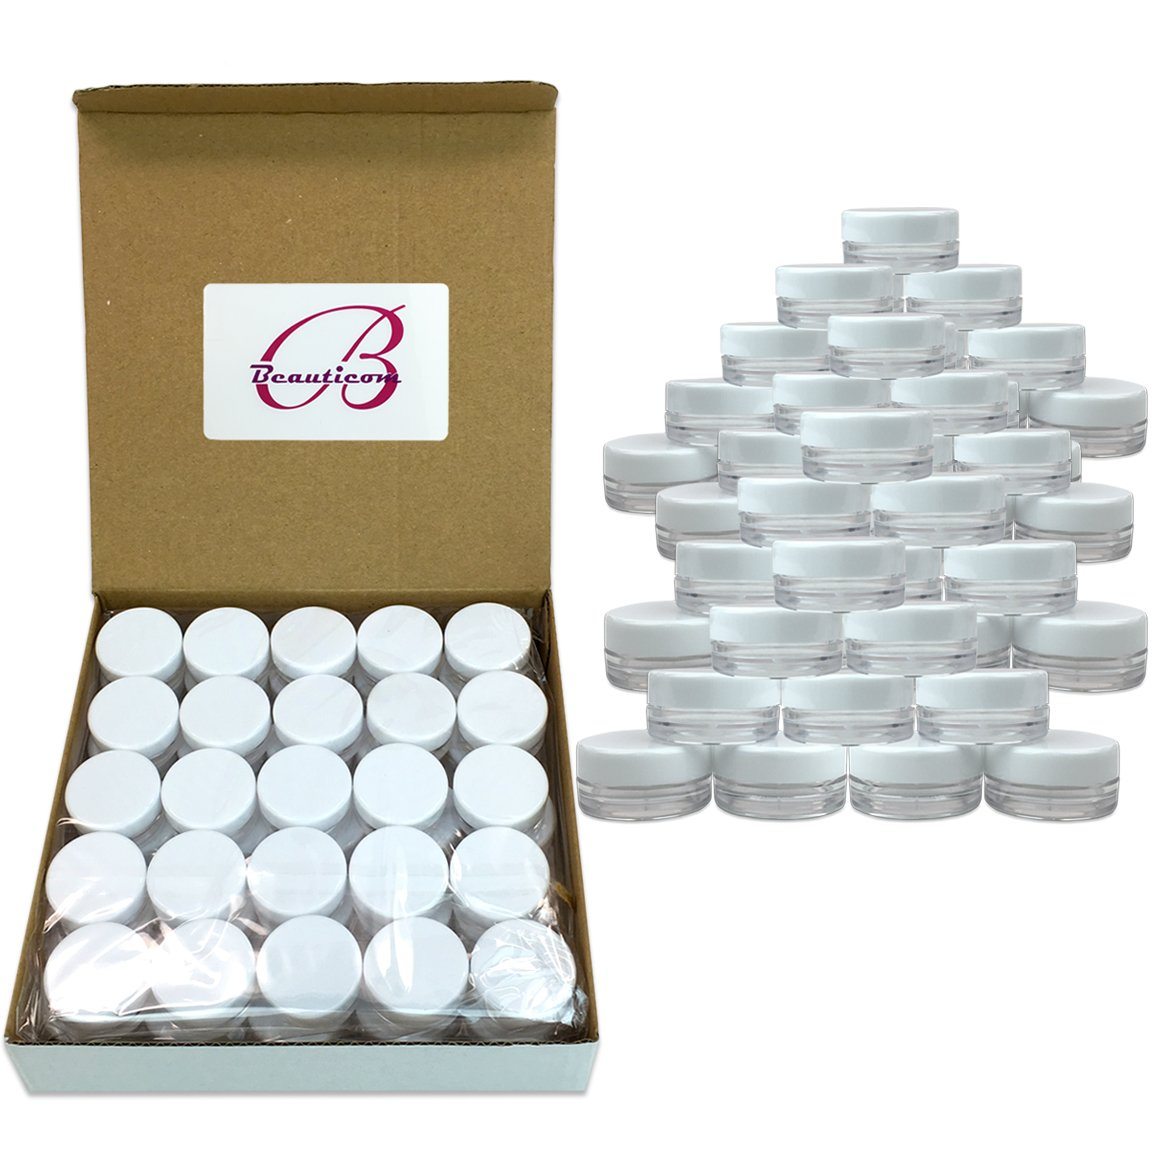 (Quantity: 2000 Pcs) Beauticom 3G/3ML Round Clear Jars with White Lids for Powdered Eyeshadow, Mineralized Makeup, Cosmetic Samples - BPA Free